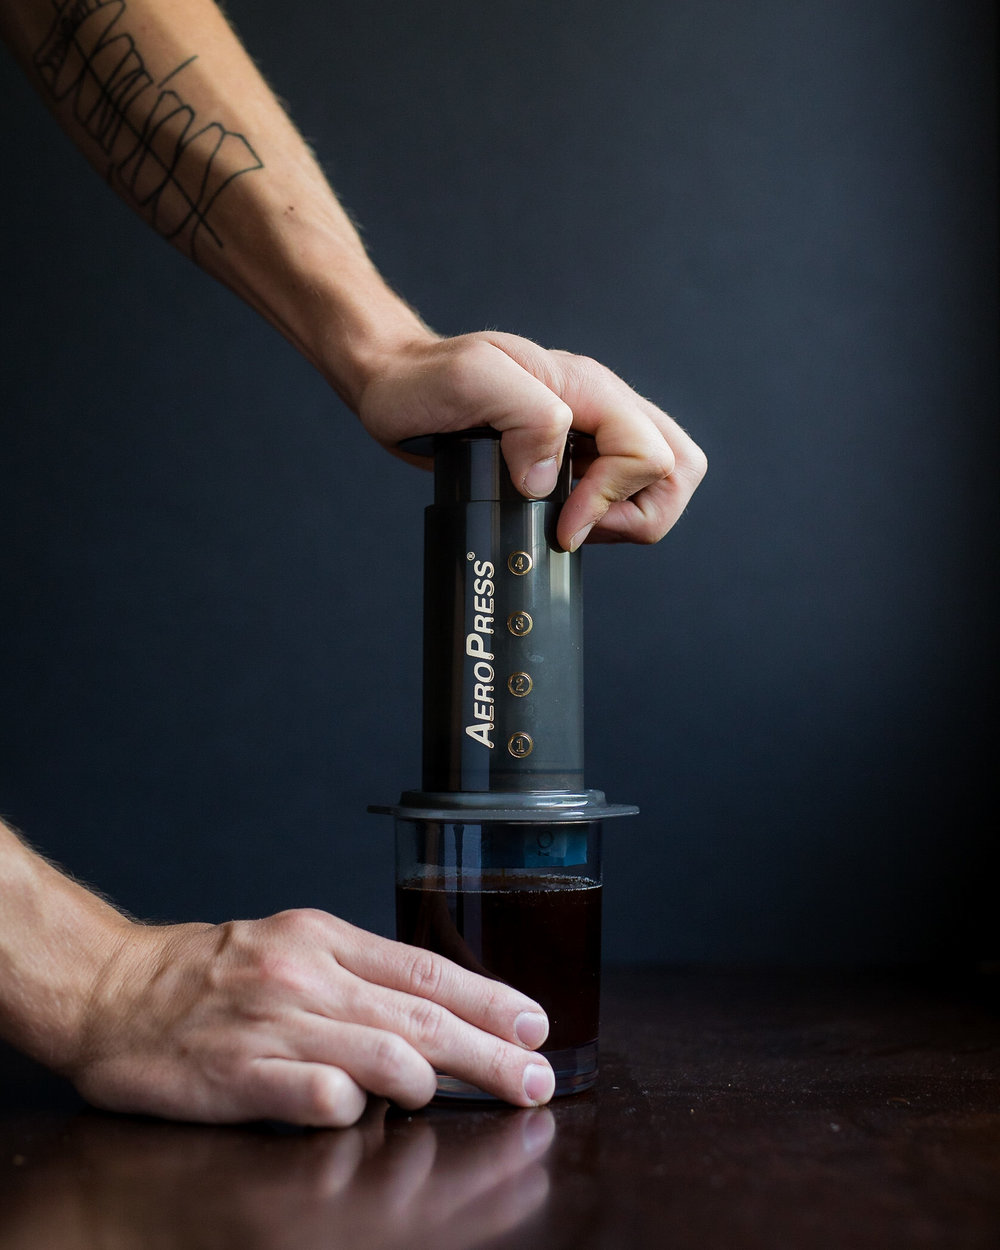 HandsomeWade-Aeropress-Brew-Guide-17.jpg